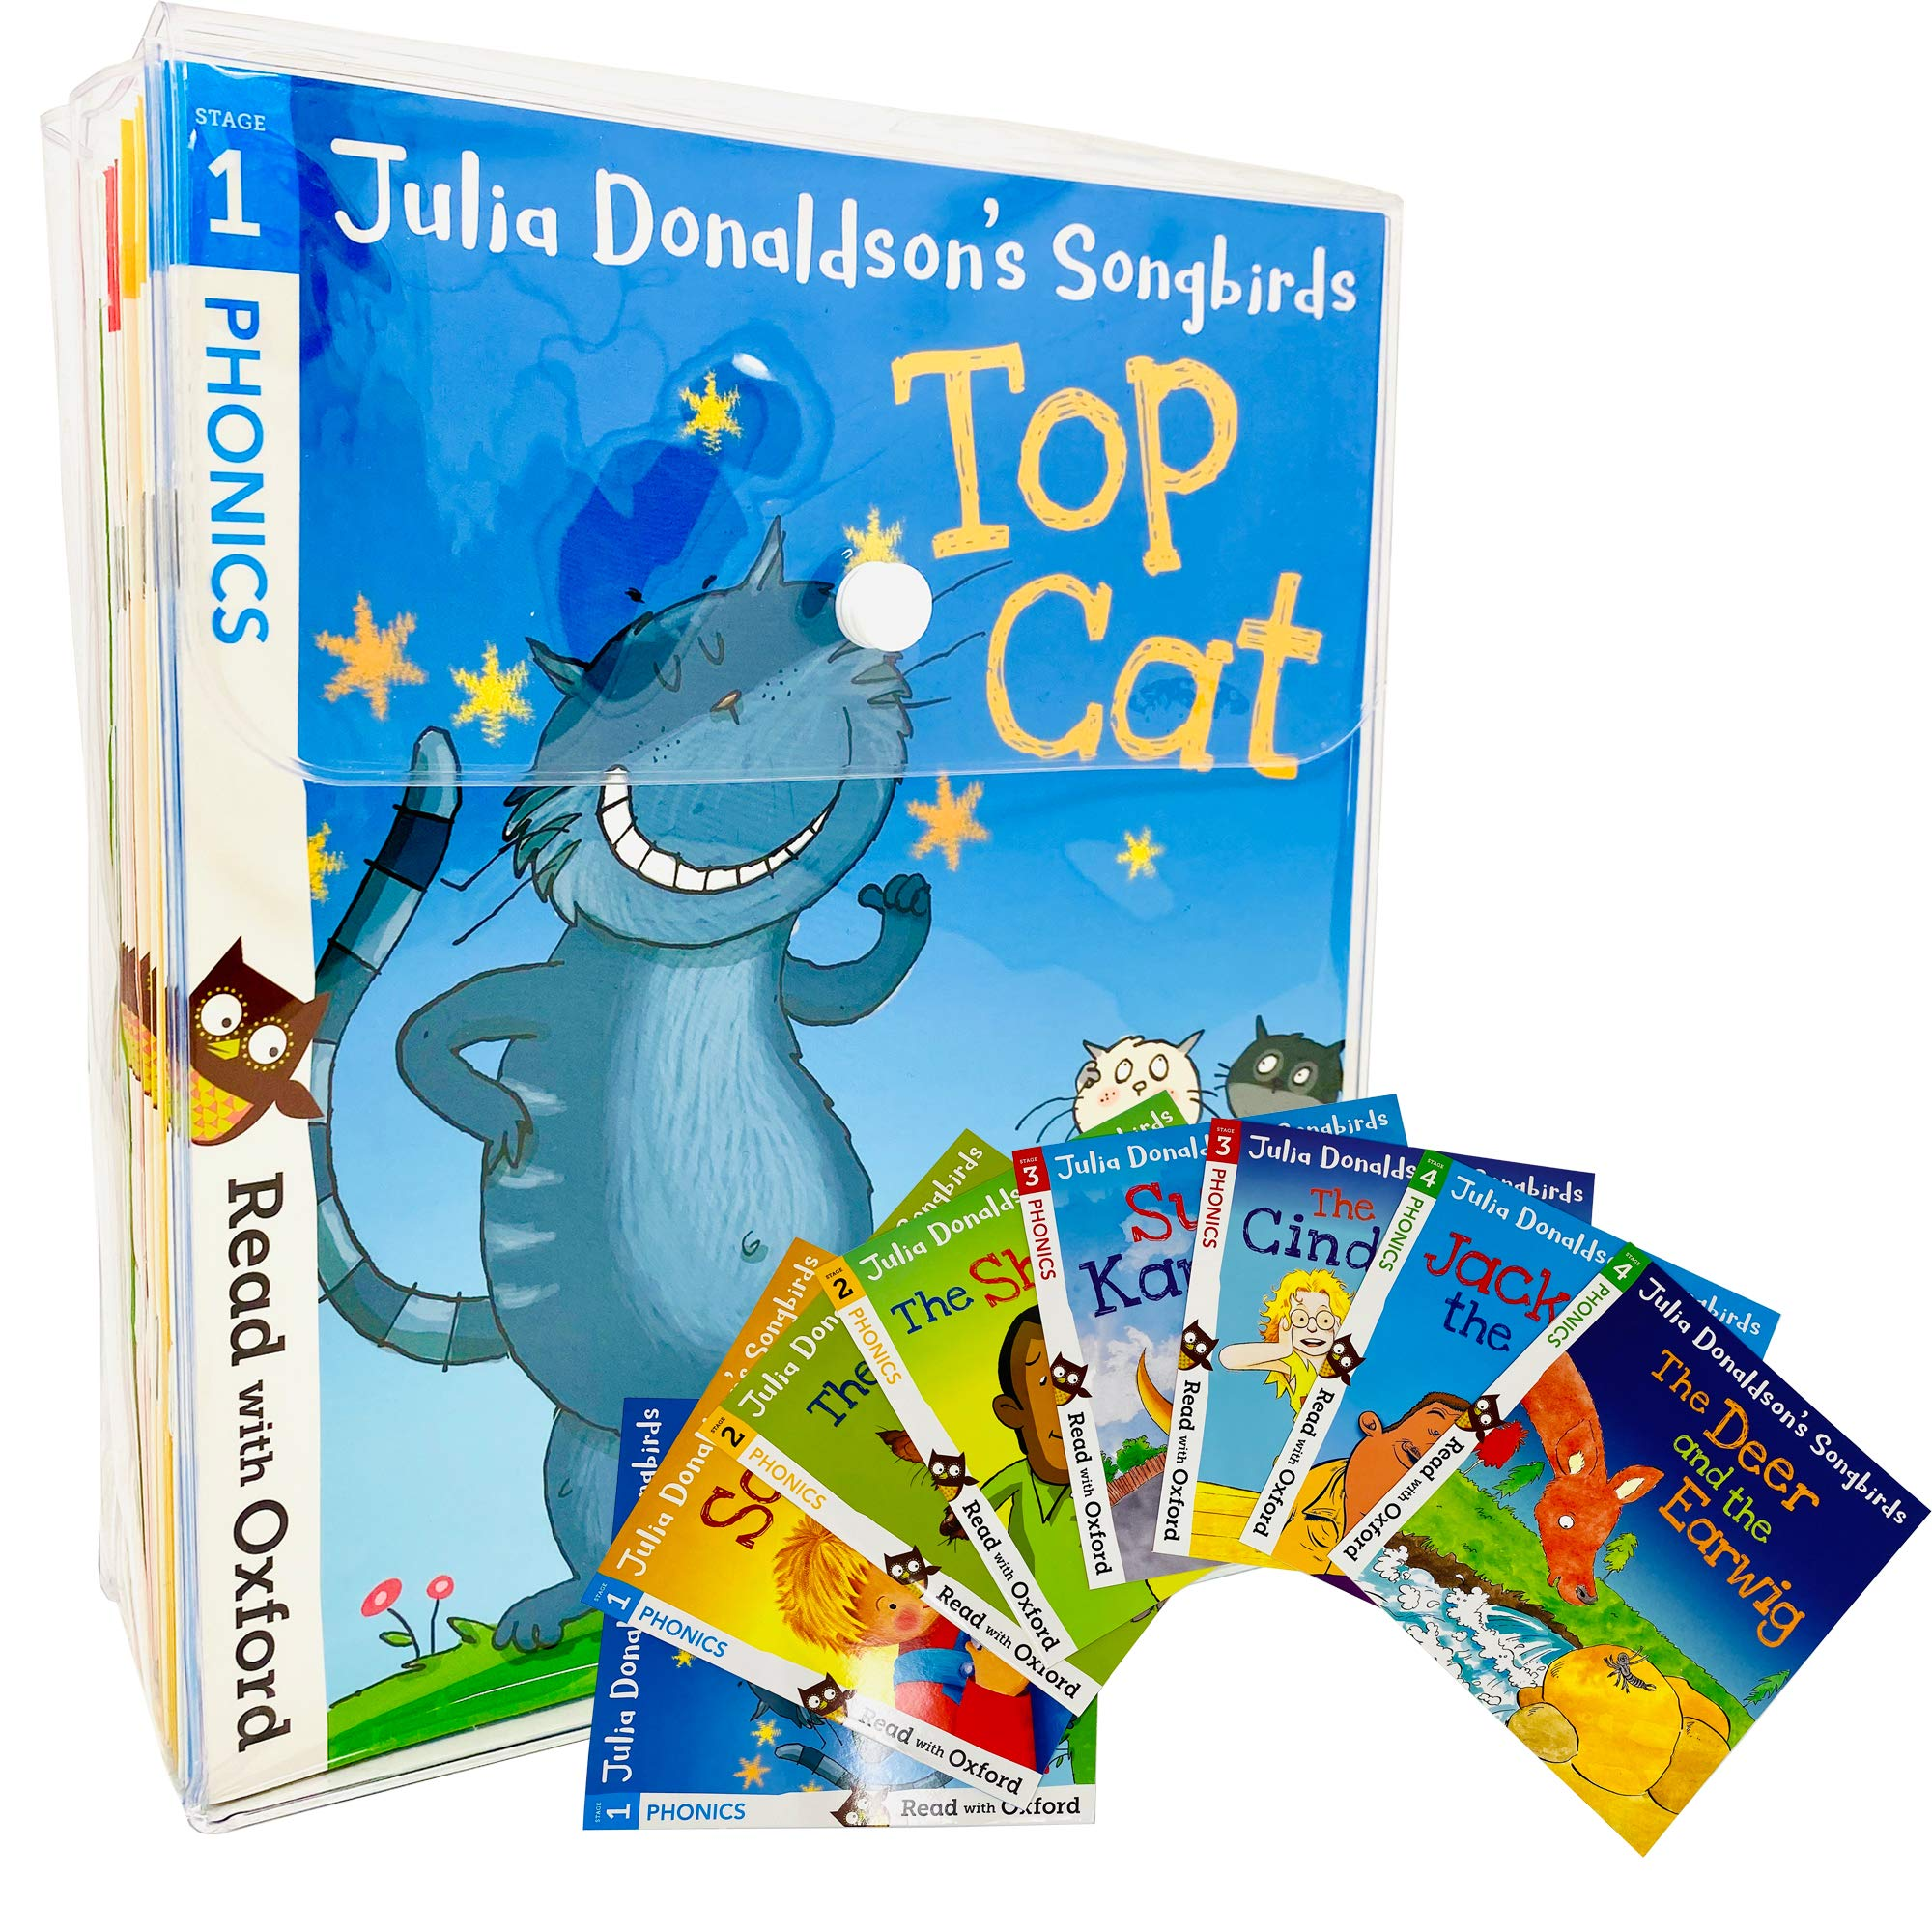 Oxford Reading Tree, Songbirds Phonics Collection 36-Books Set RRP128.82 Stage 1+, 2, 3, 4, 5and6 Oxford Reading Tree by Julia Donaldson 2011 Paperback: Amazon.es: Libros